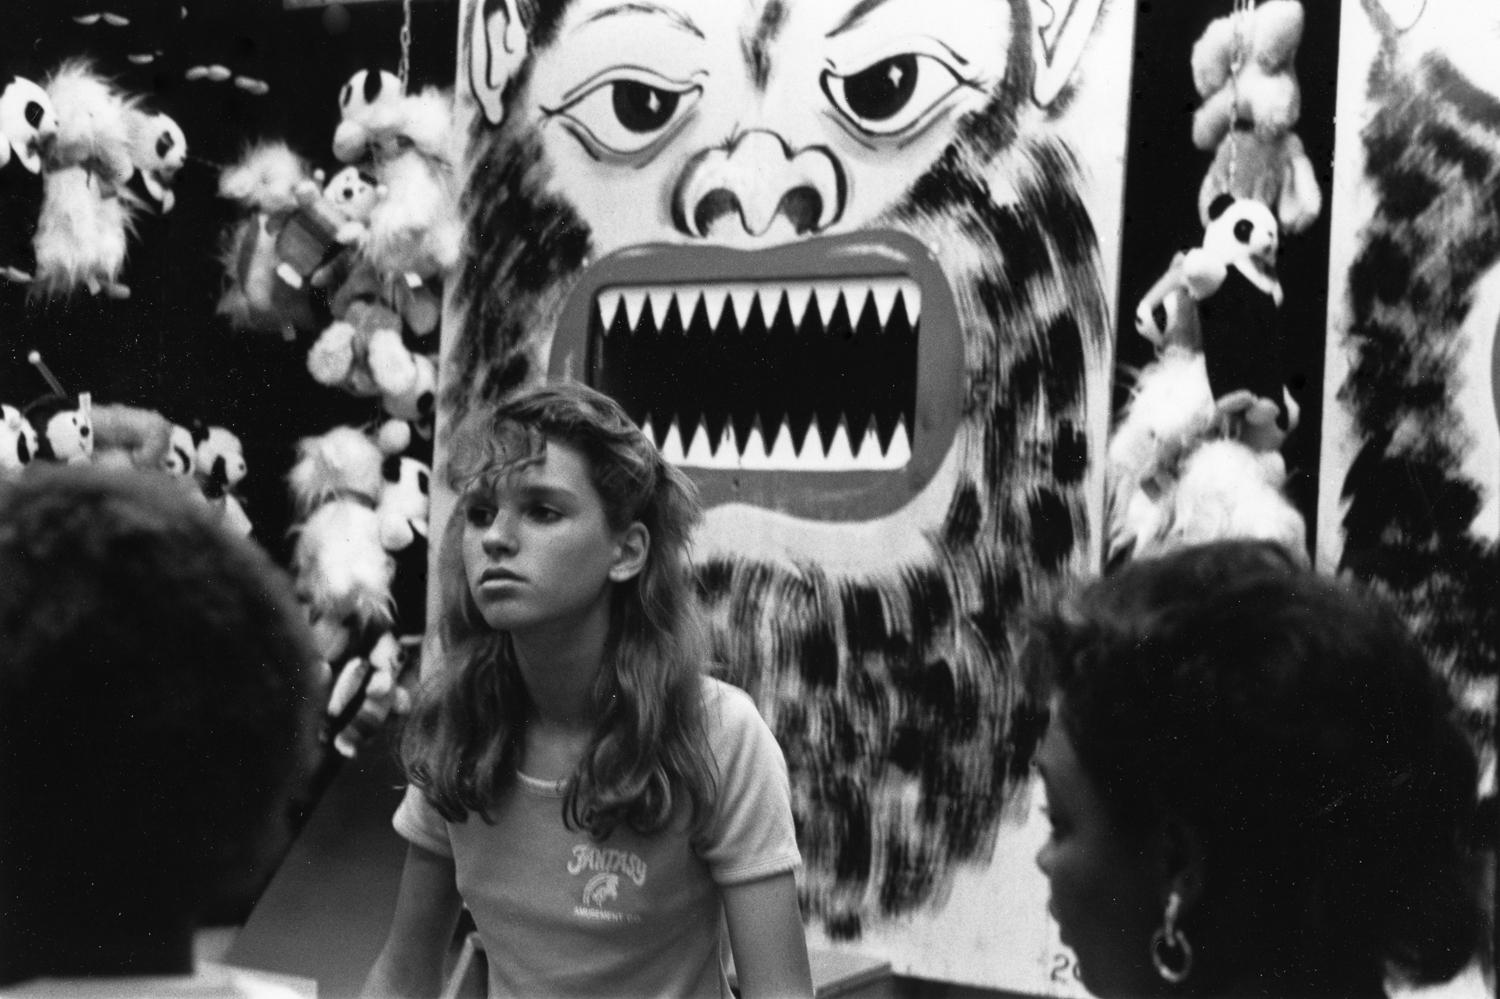 Carnival Worker, Chicago, 1987